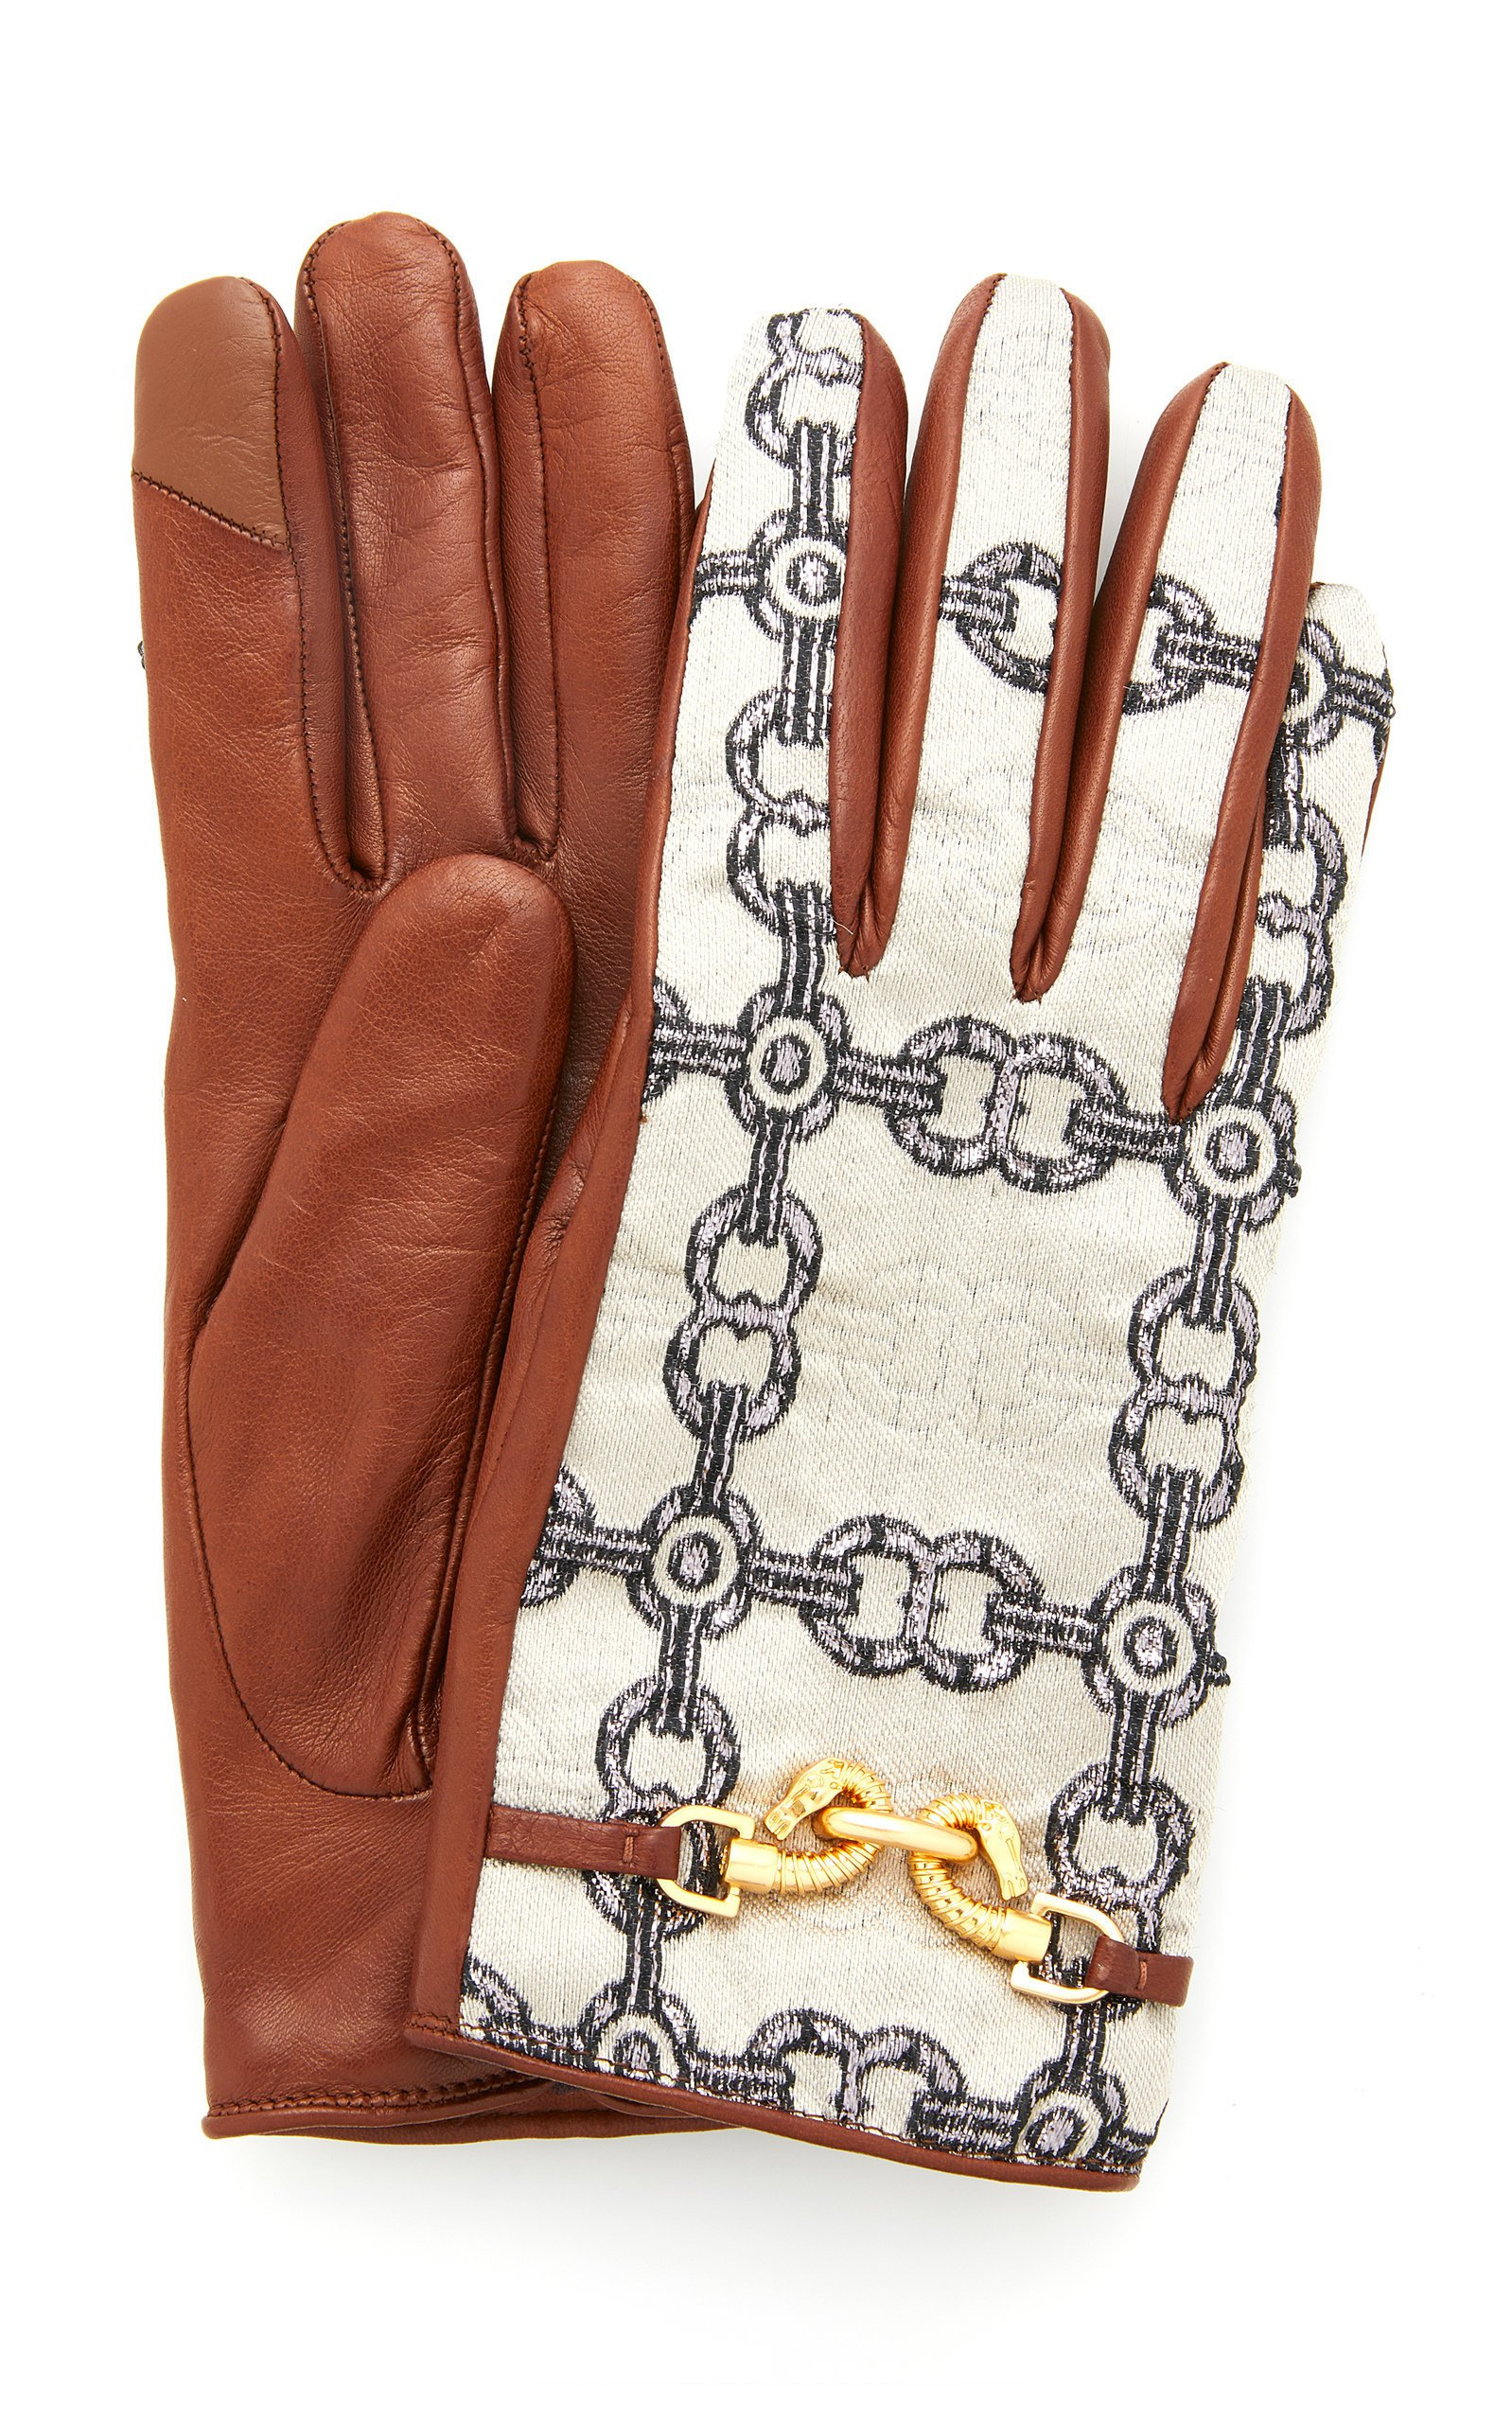 Tory Burch Jessa Gloves